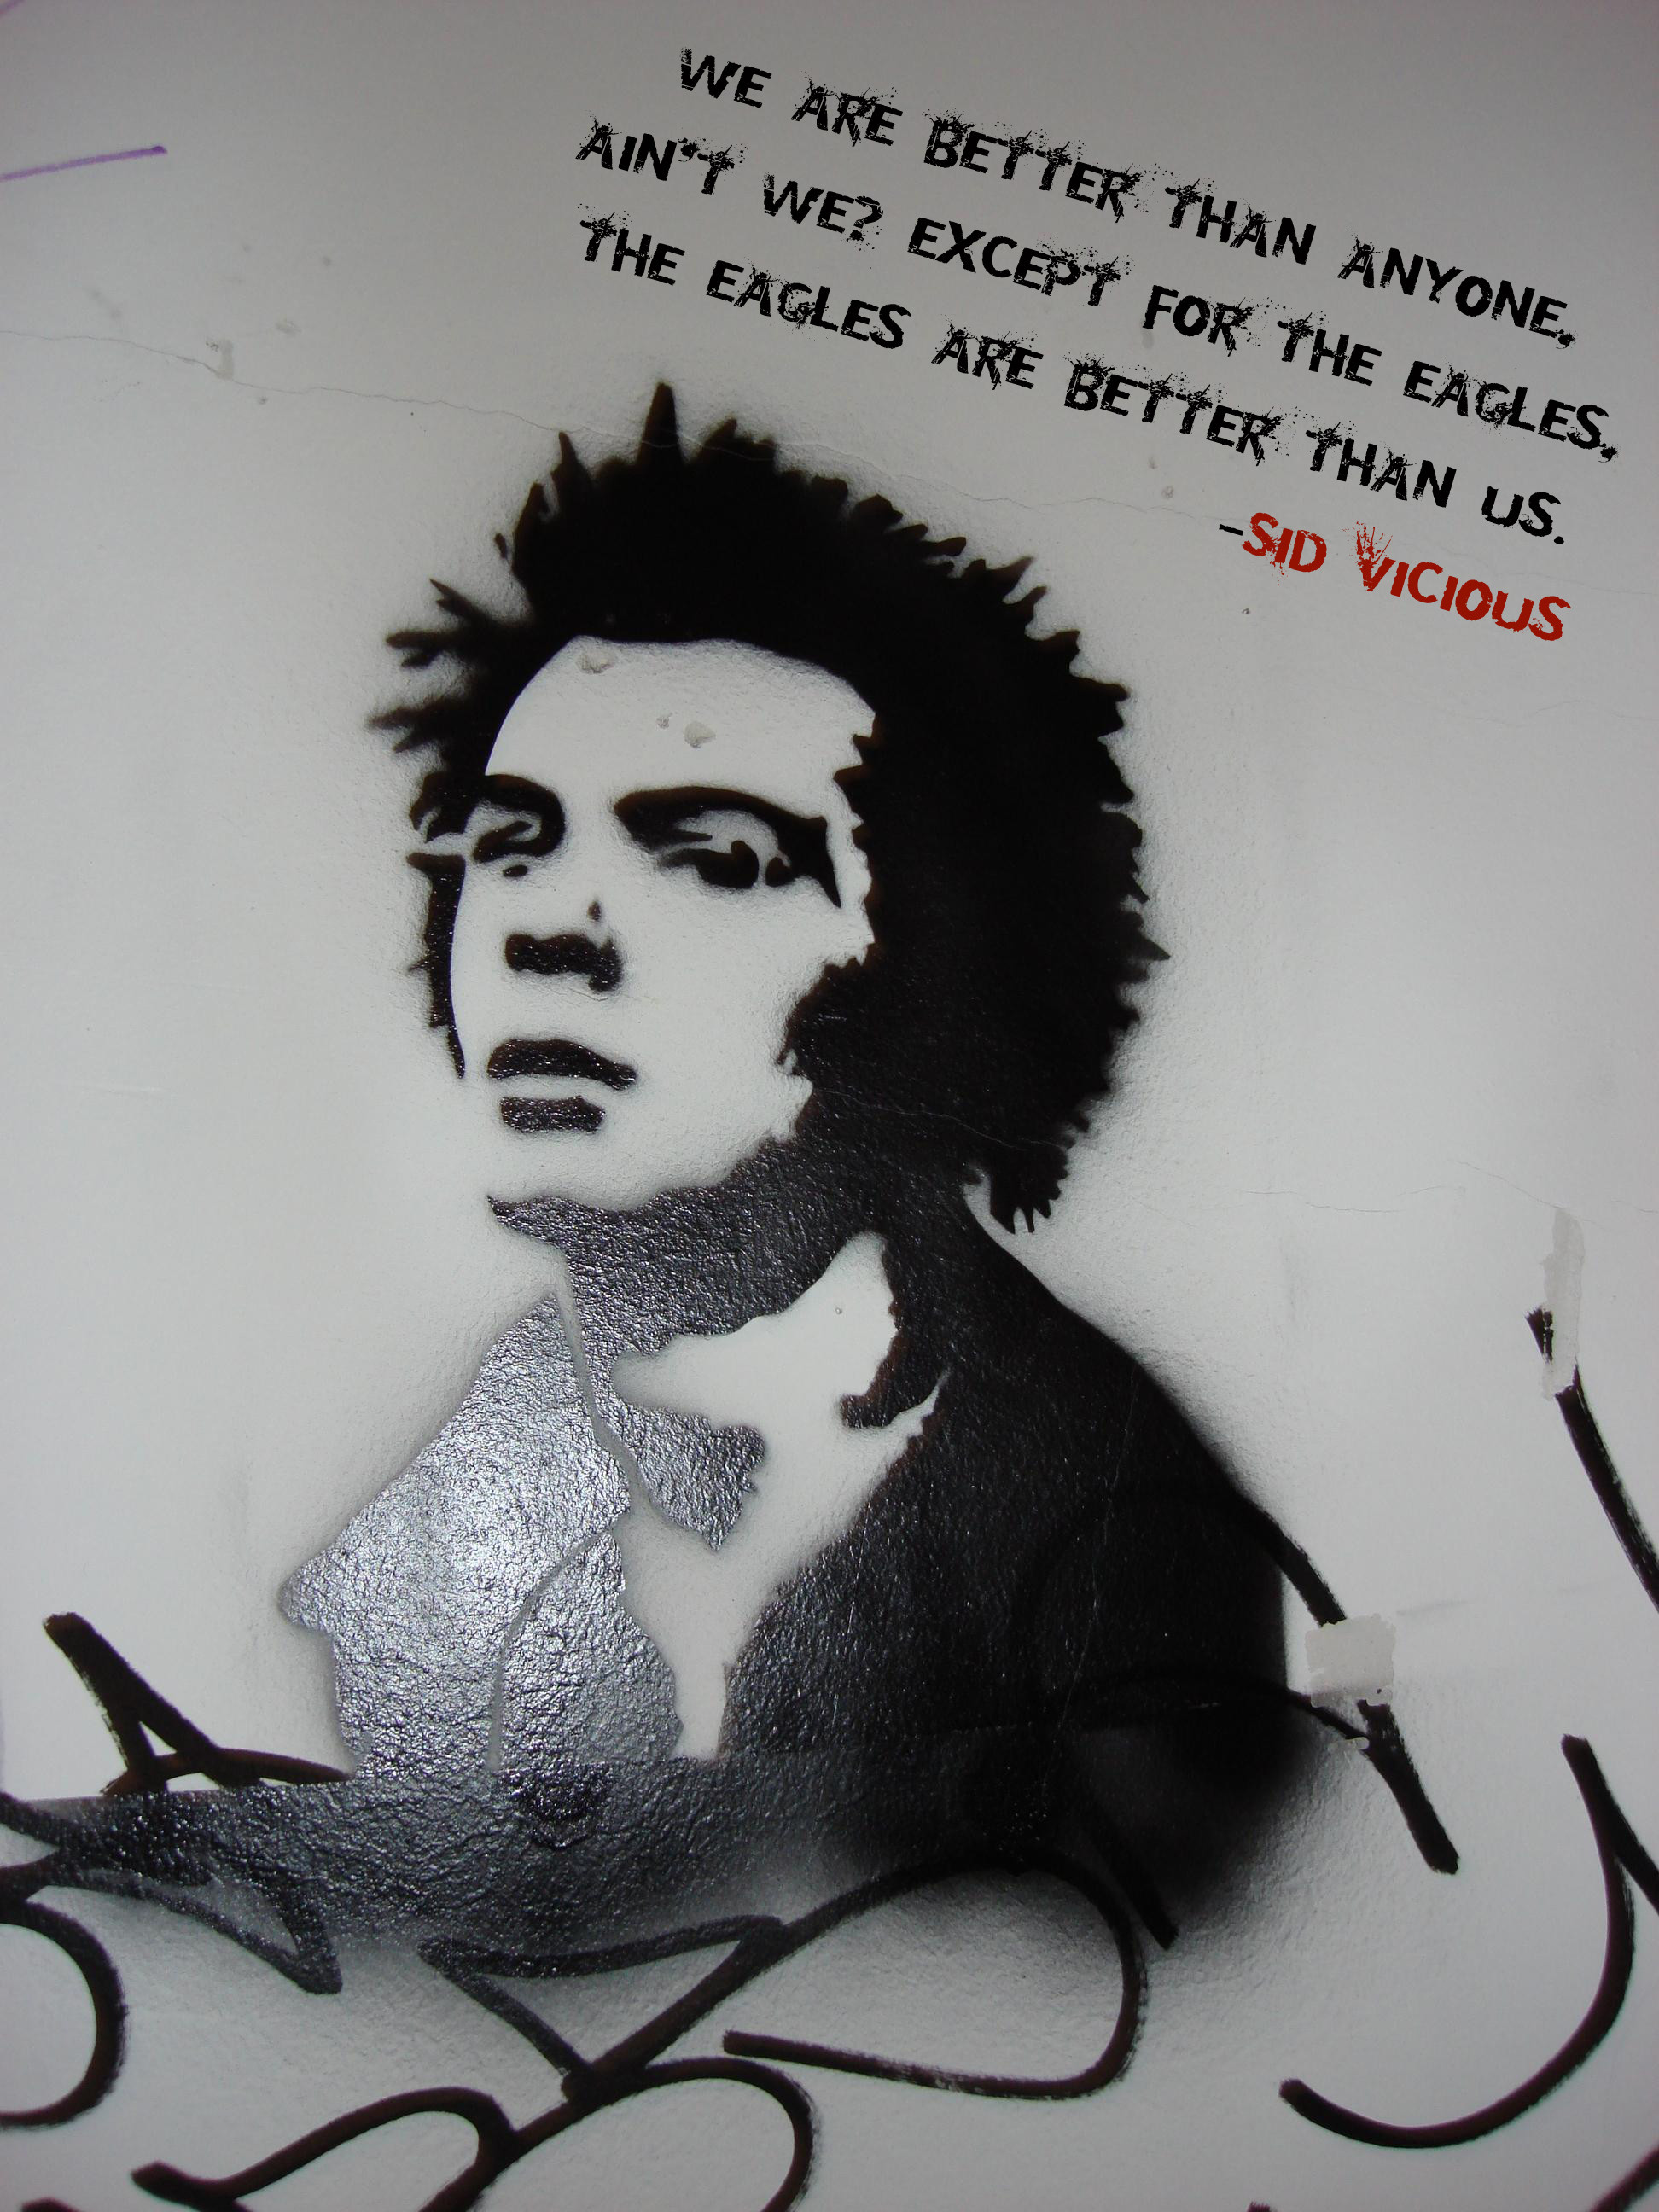 1944x2592 ... SEX PISTOLS WALLPAPERS FREE Wallpapers & Background Images Great Sid  Vicious Quotes Wallpaper Free Wallpaper For